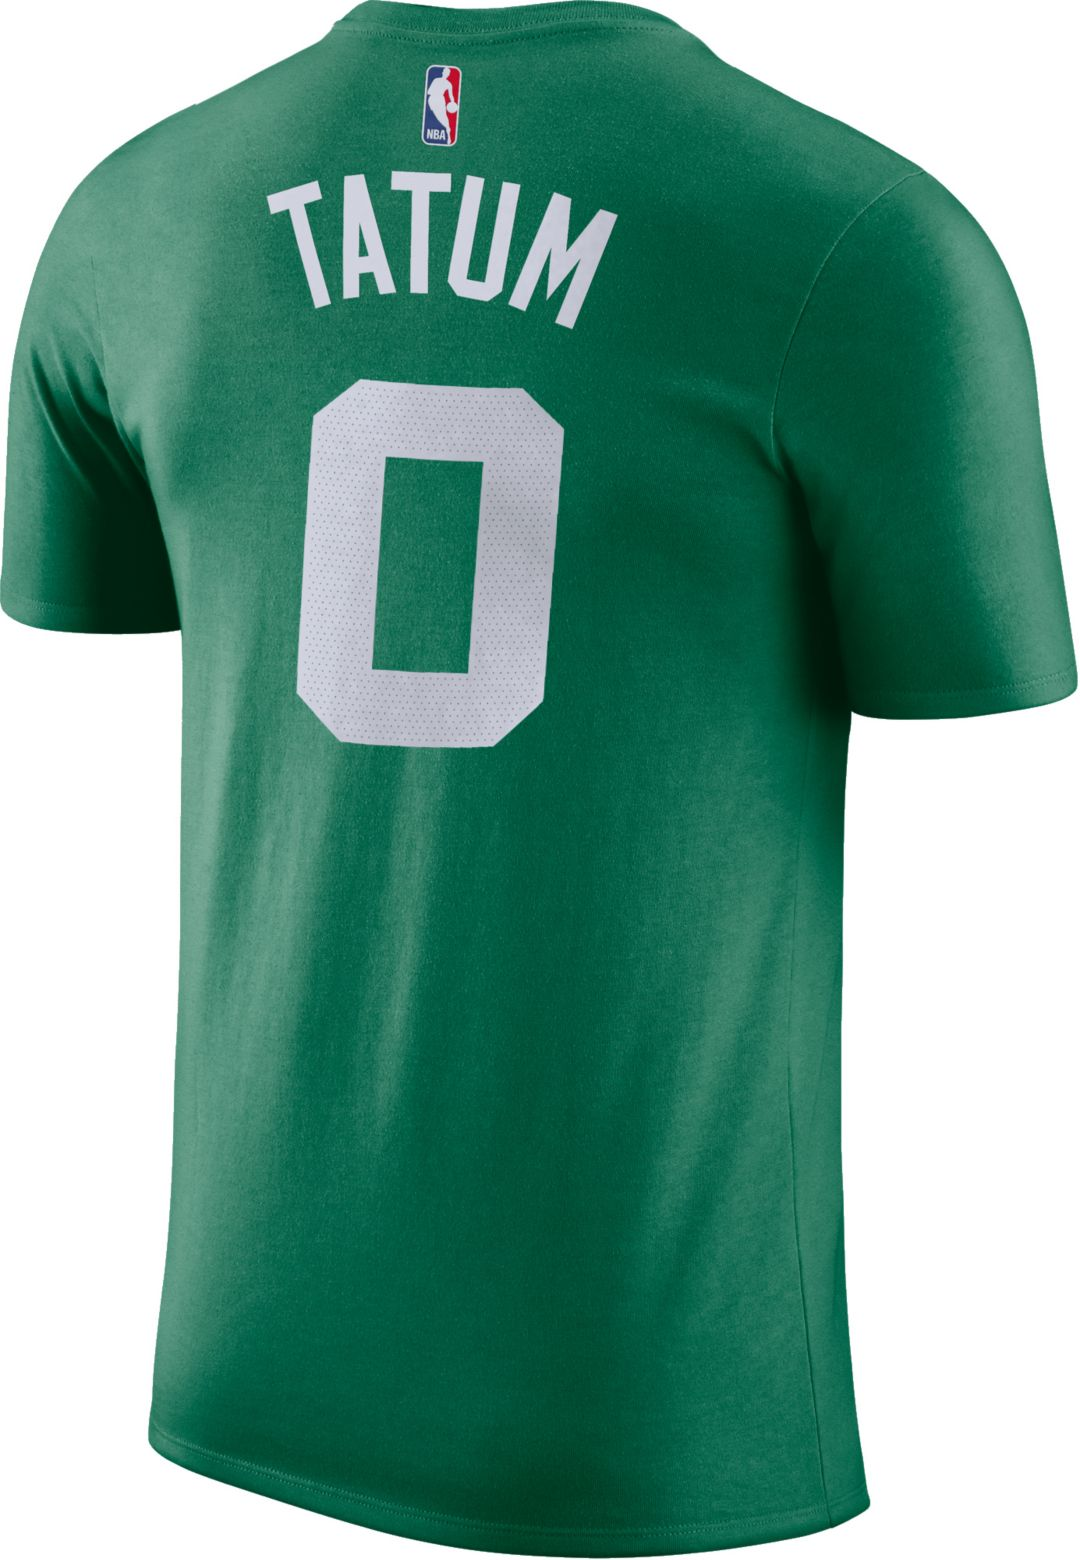 sale retailer 47be6 6eef0 Nike Men's Boston Celtics Jayson Tatum #0 Dri-FIT Kelly Green T-Shirt